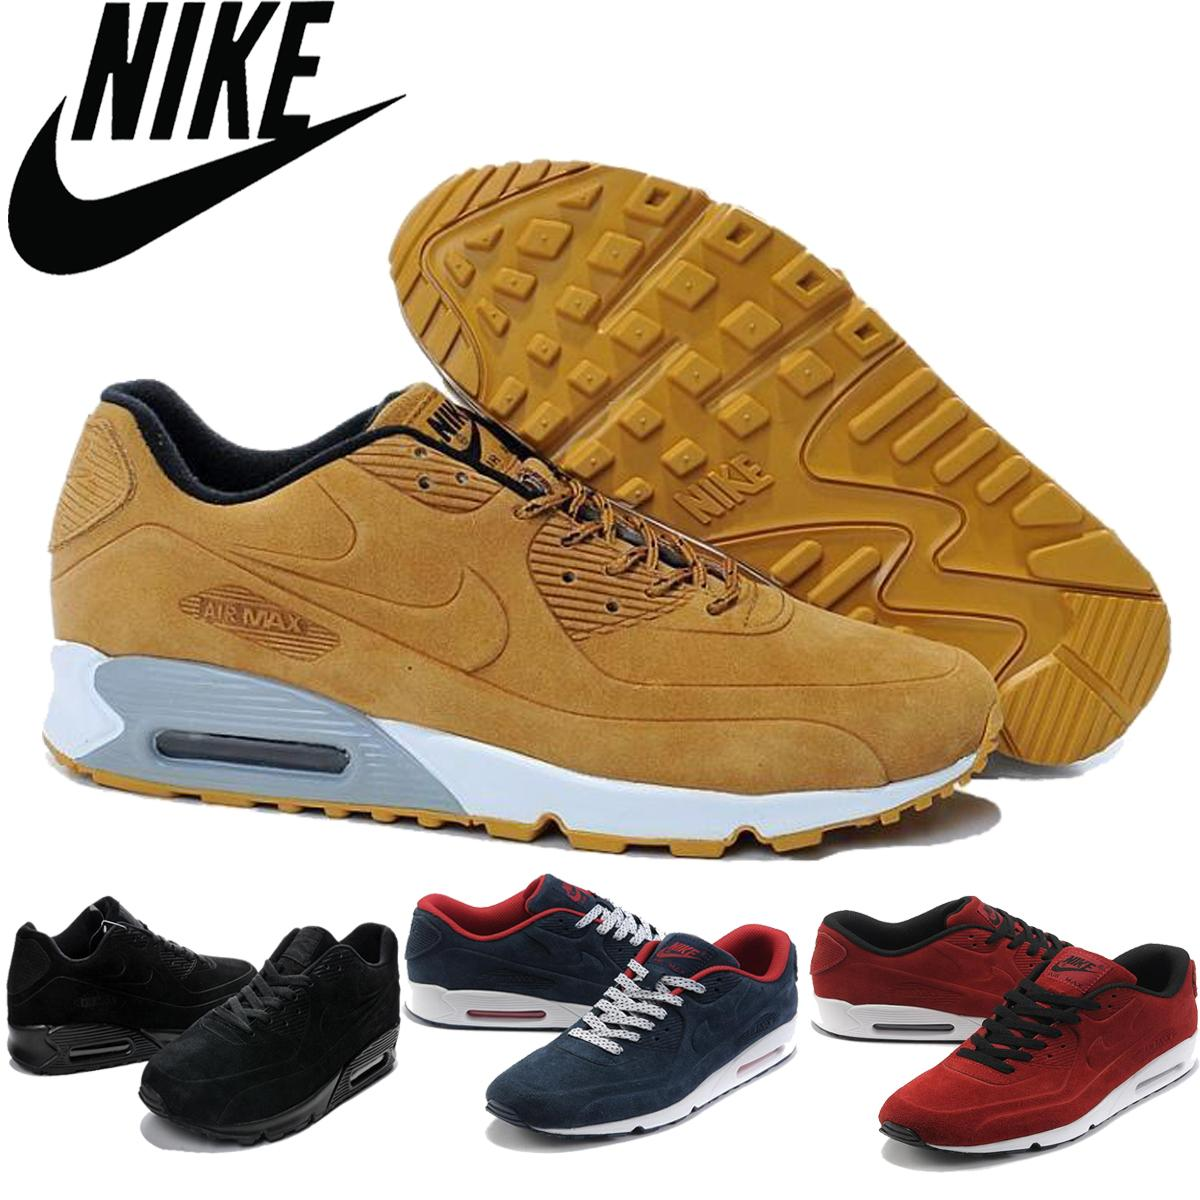 Nike Air Max 90 Men Shipping 2016 Nike Max 90 Vt Antifur Cow Leather Running Shoes Fashion Sports Airmax 90vt Training Shoes For Male,40-45 Online with ...